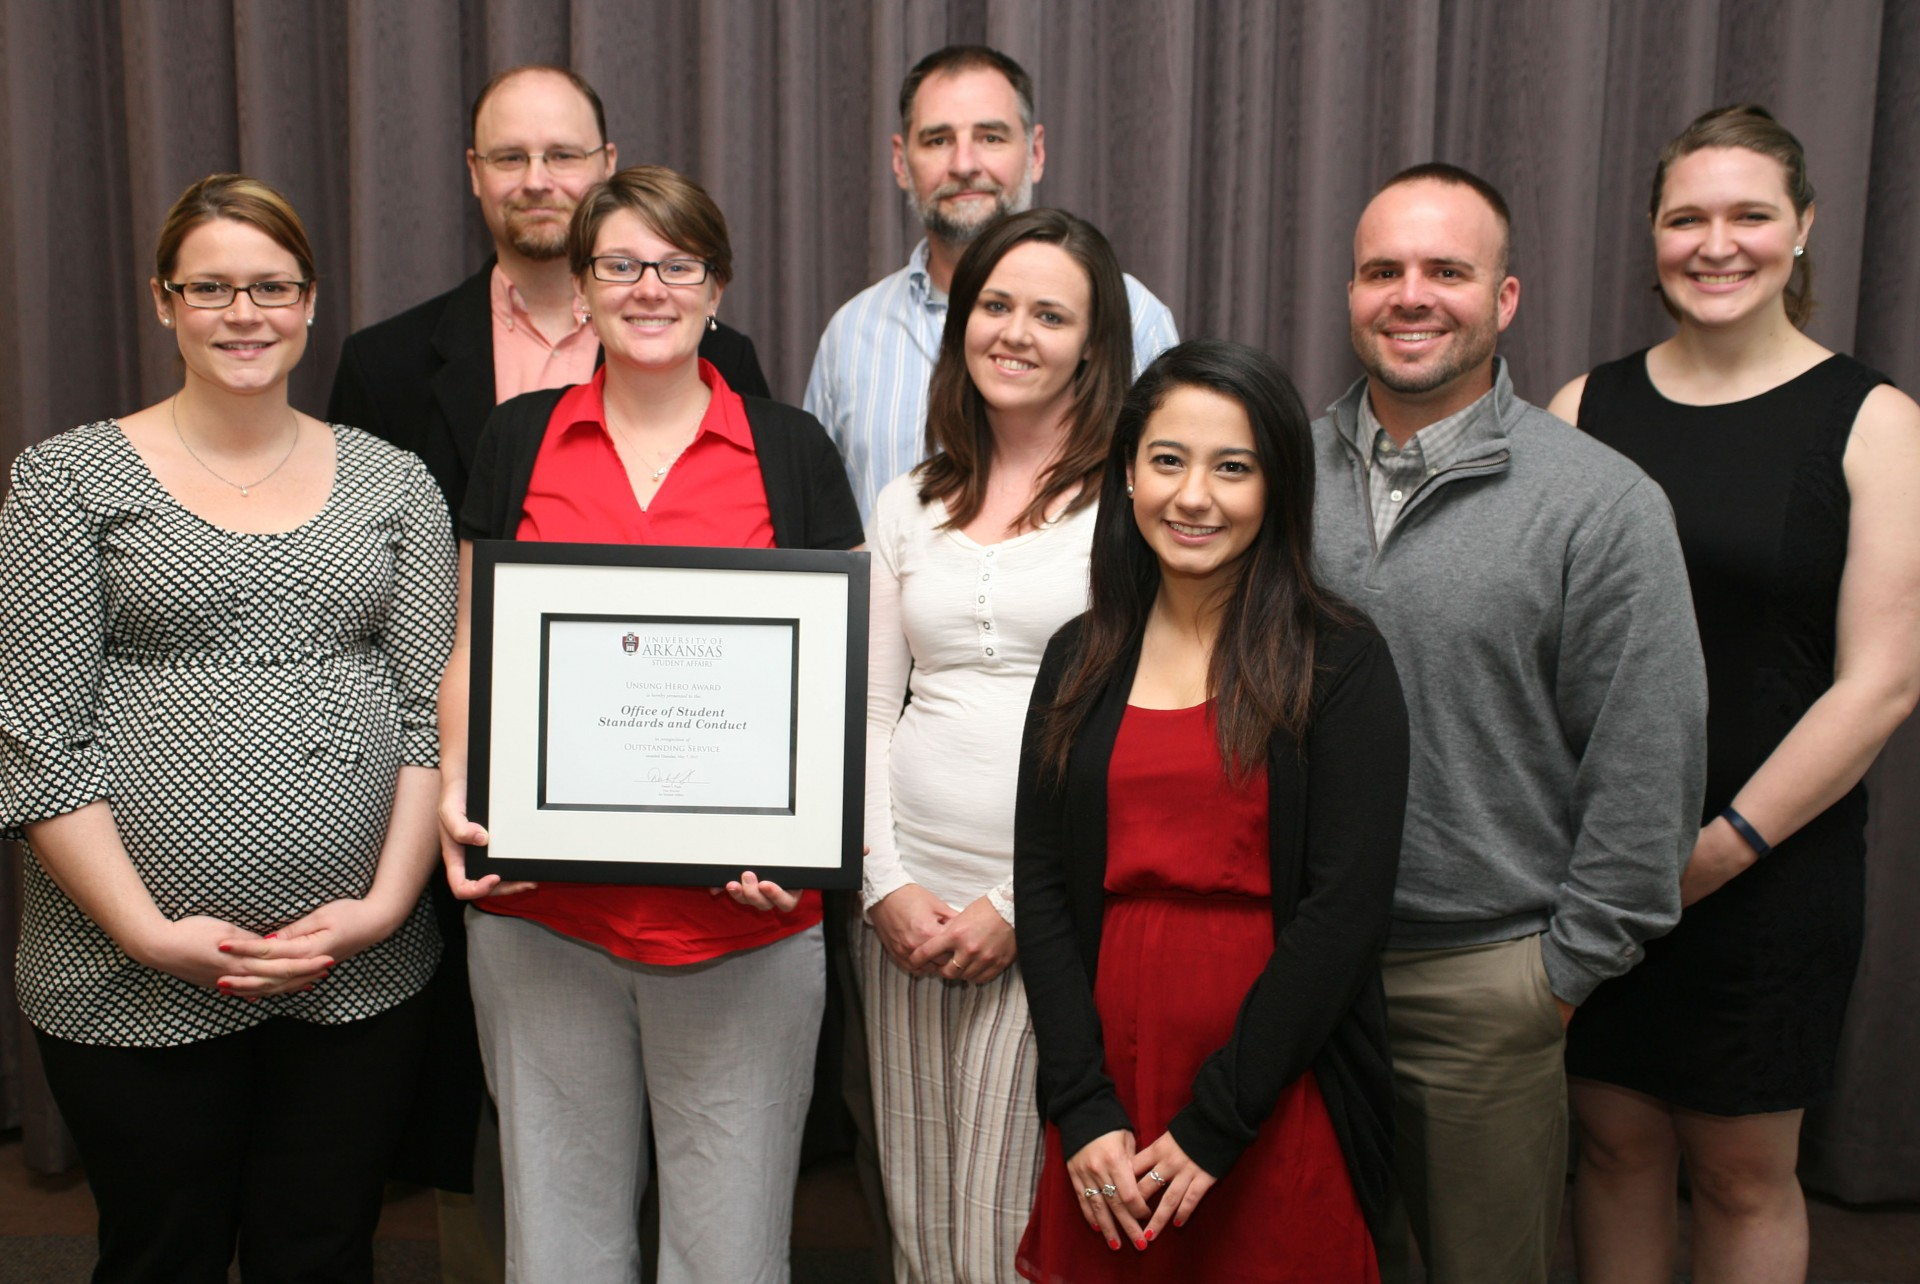 The Office of Student Standards and Conduct received the Unsung Hero Award.